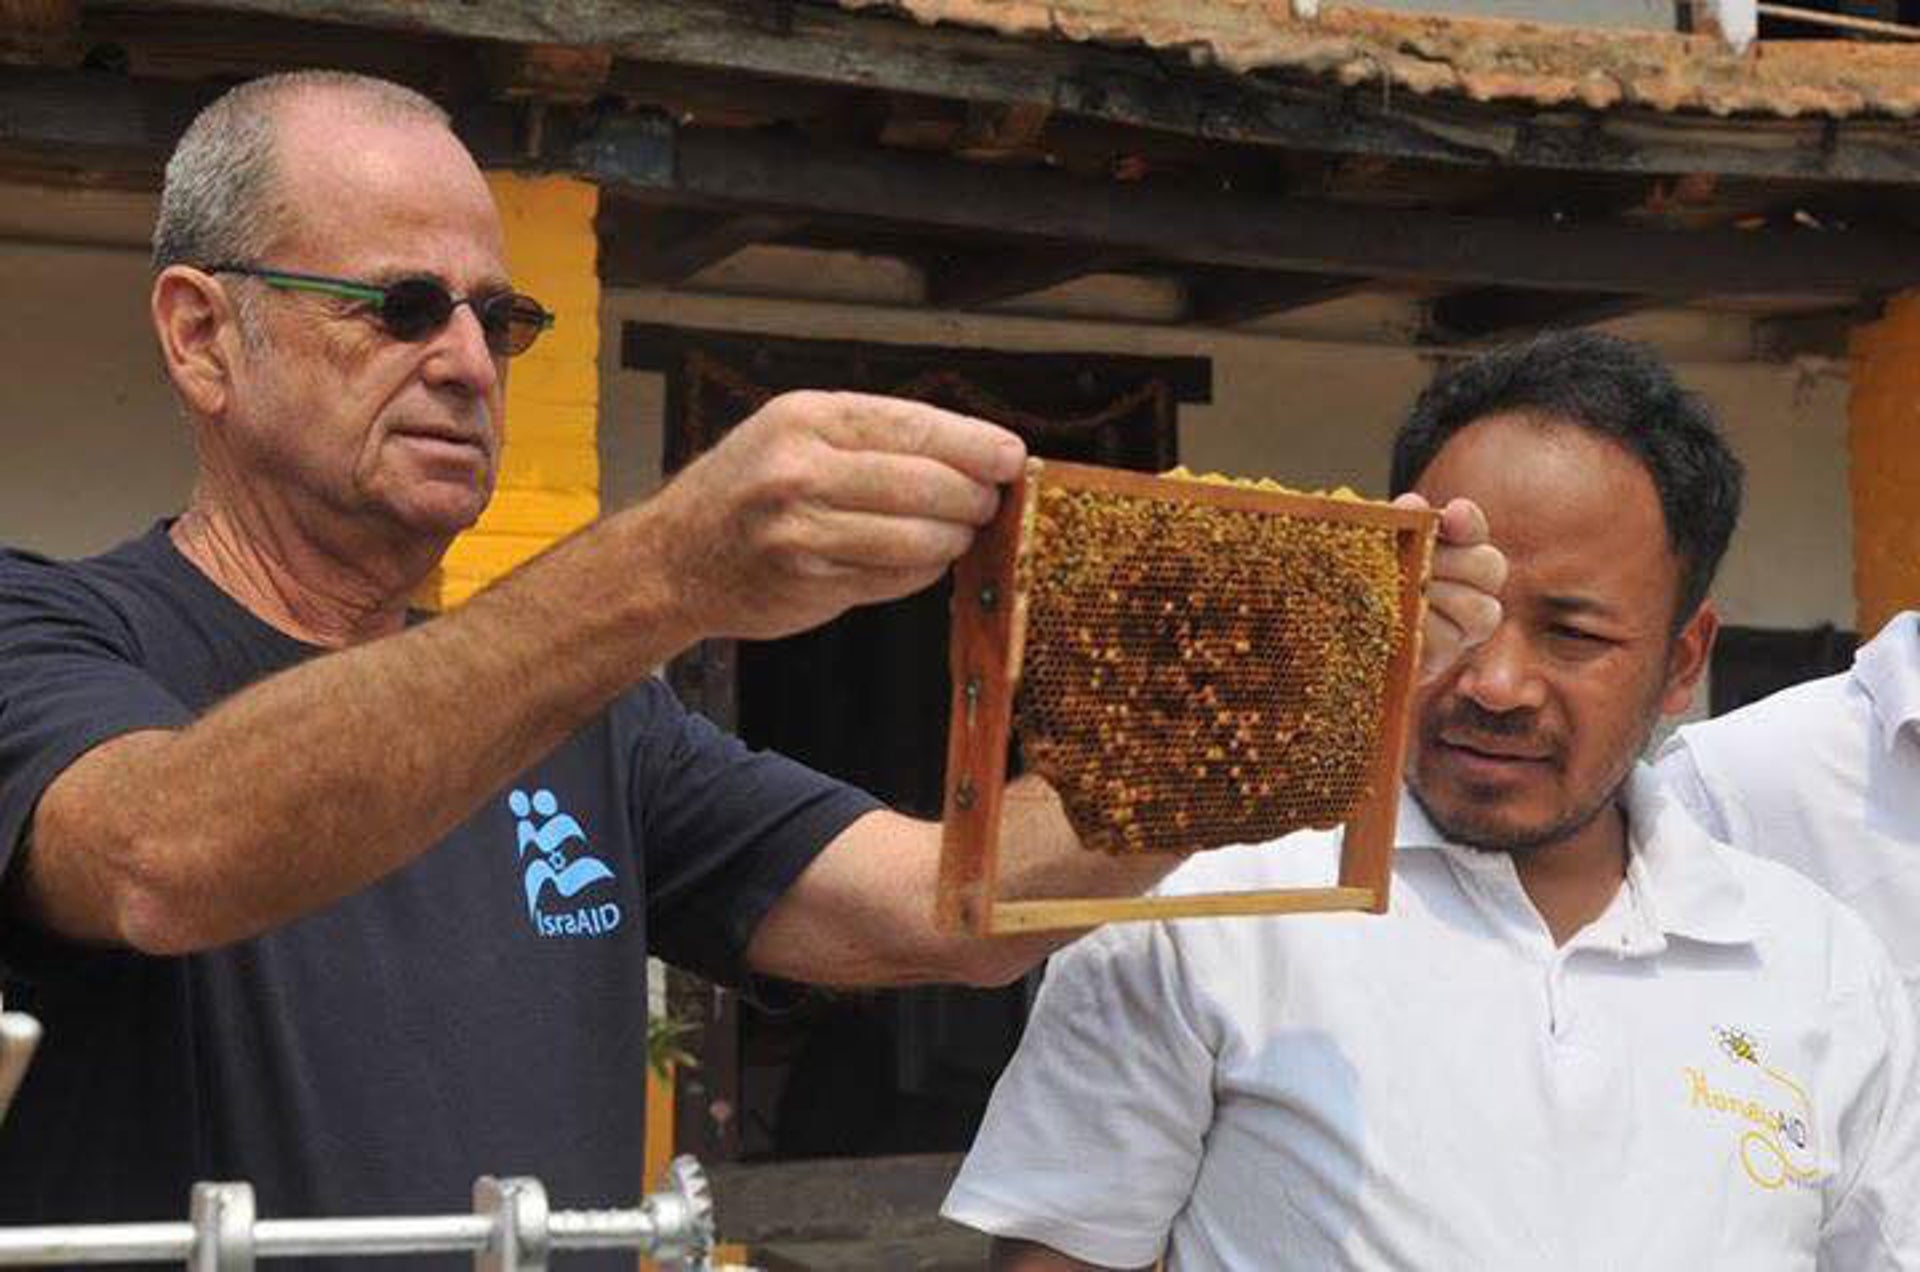 Tete Dagani inspects a honeycomb. After the 2015 earthquake, he and Reizy decided to devote all their time to Nepal.